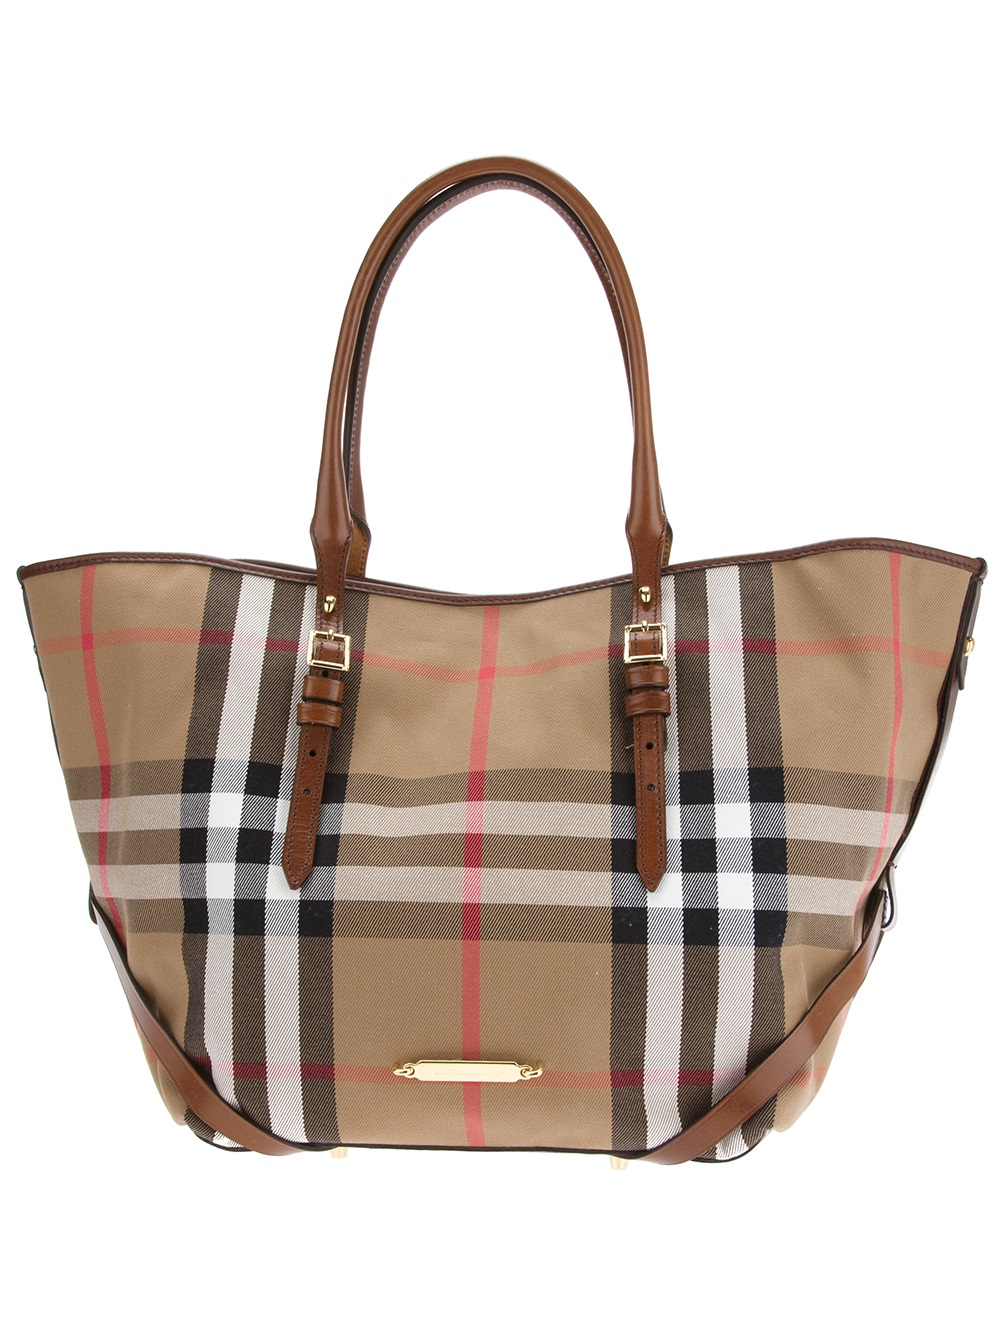 1129e83f70c4 Lyst - Burberry Medium Bridle House Tote Bag in Brown